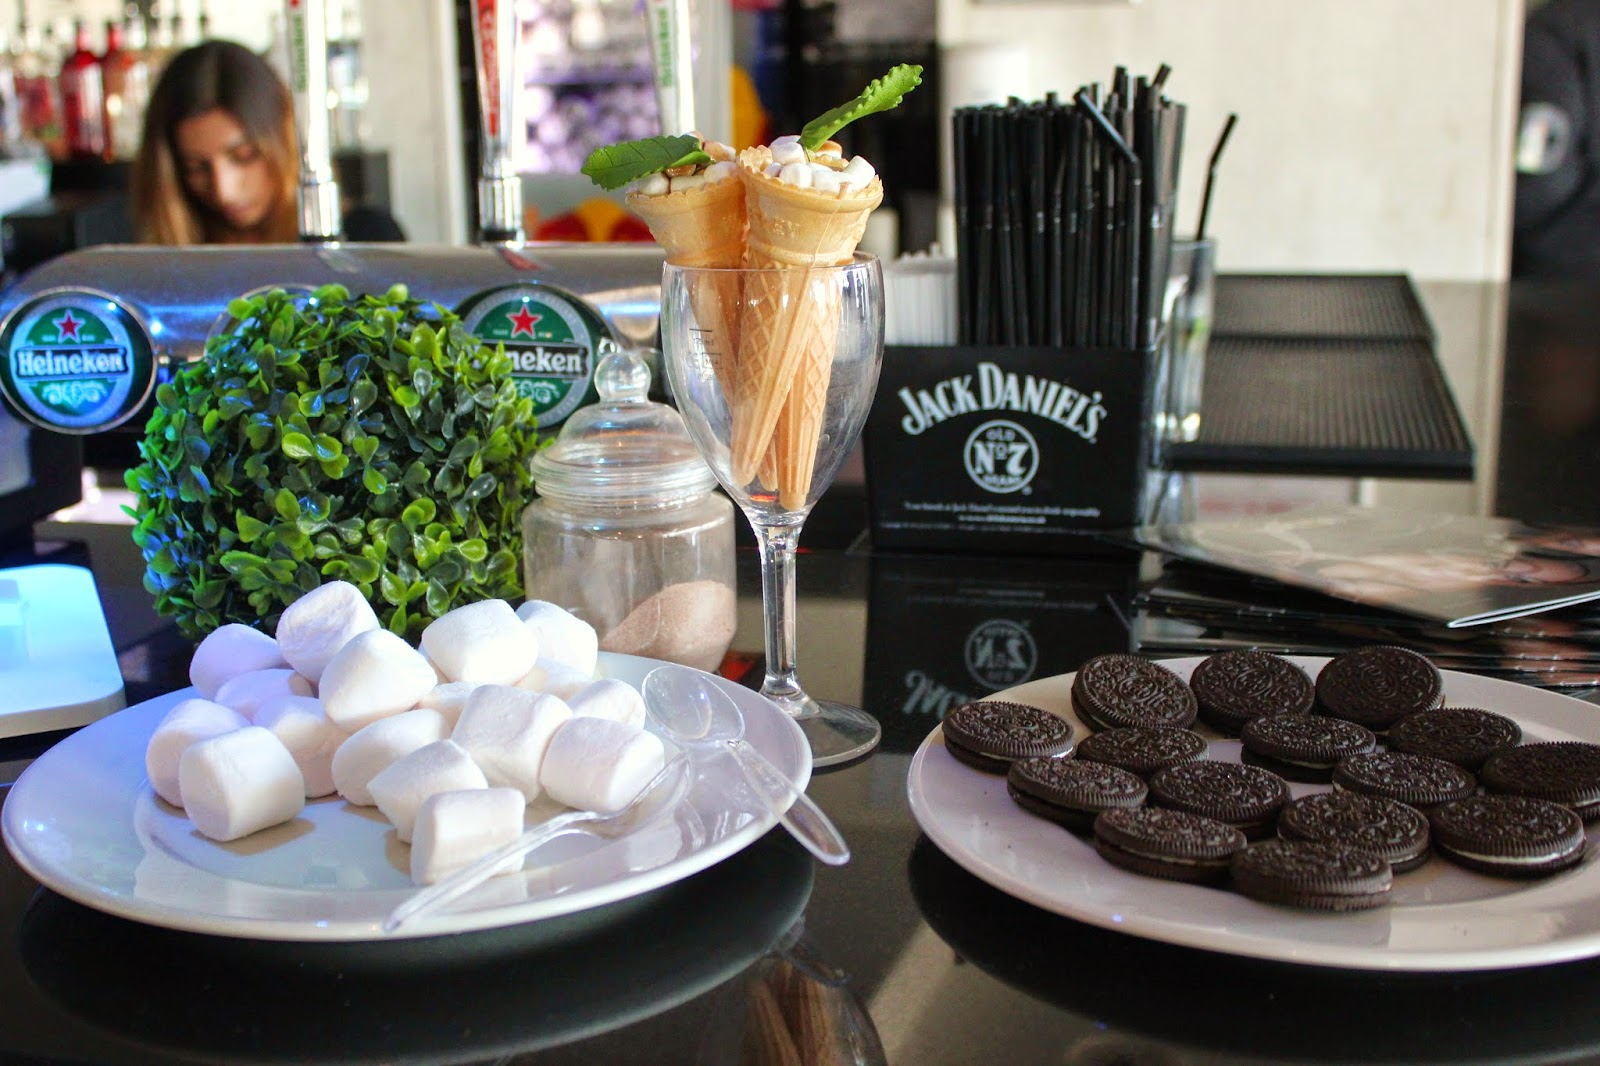 bloggers-love-fashion-week-food-marshmallows-oreos